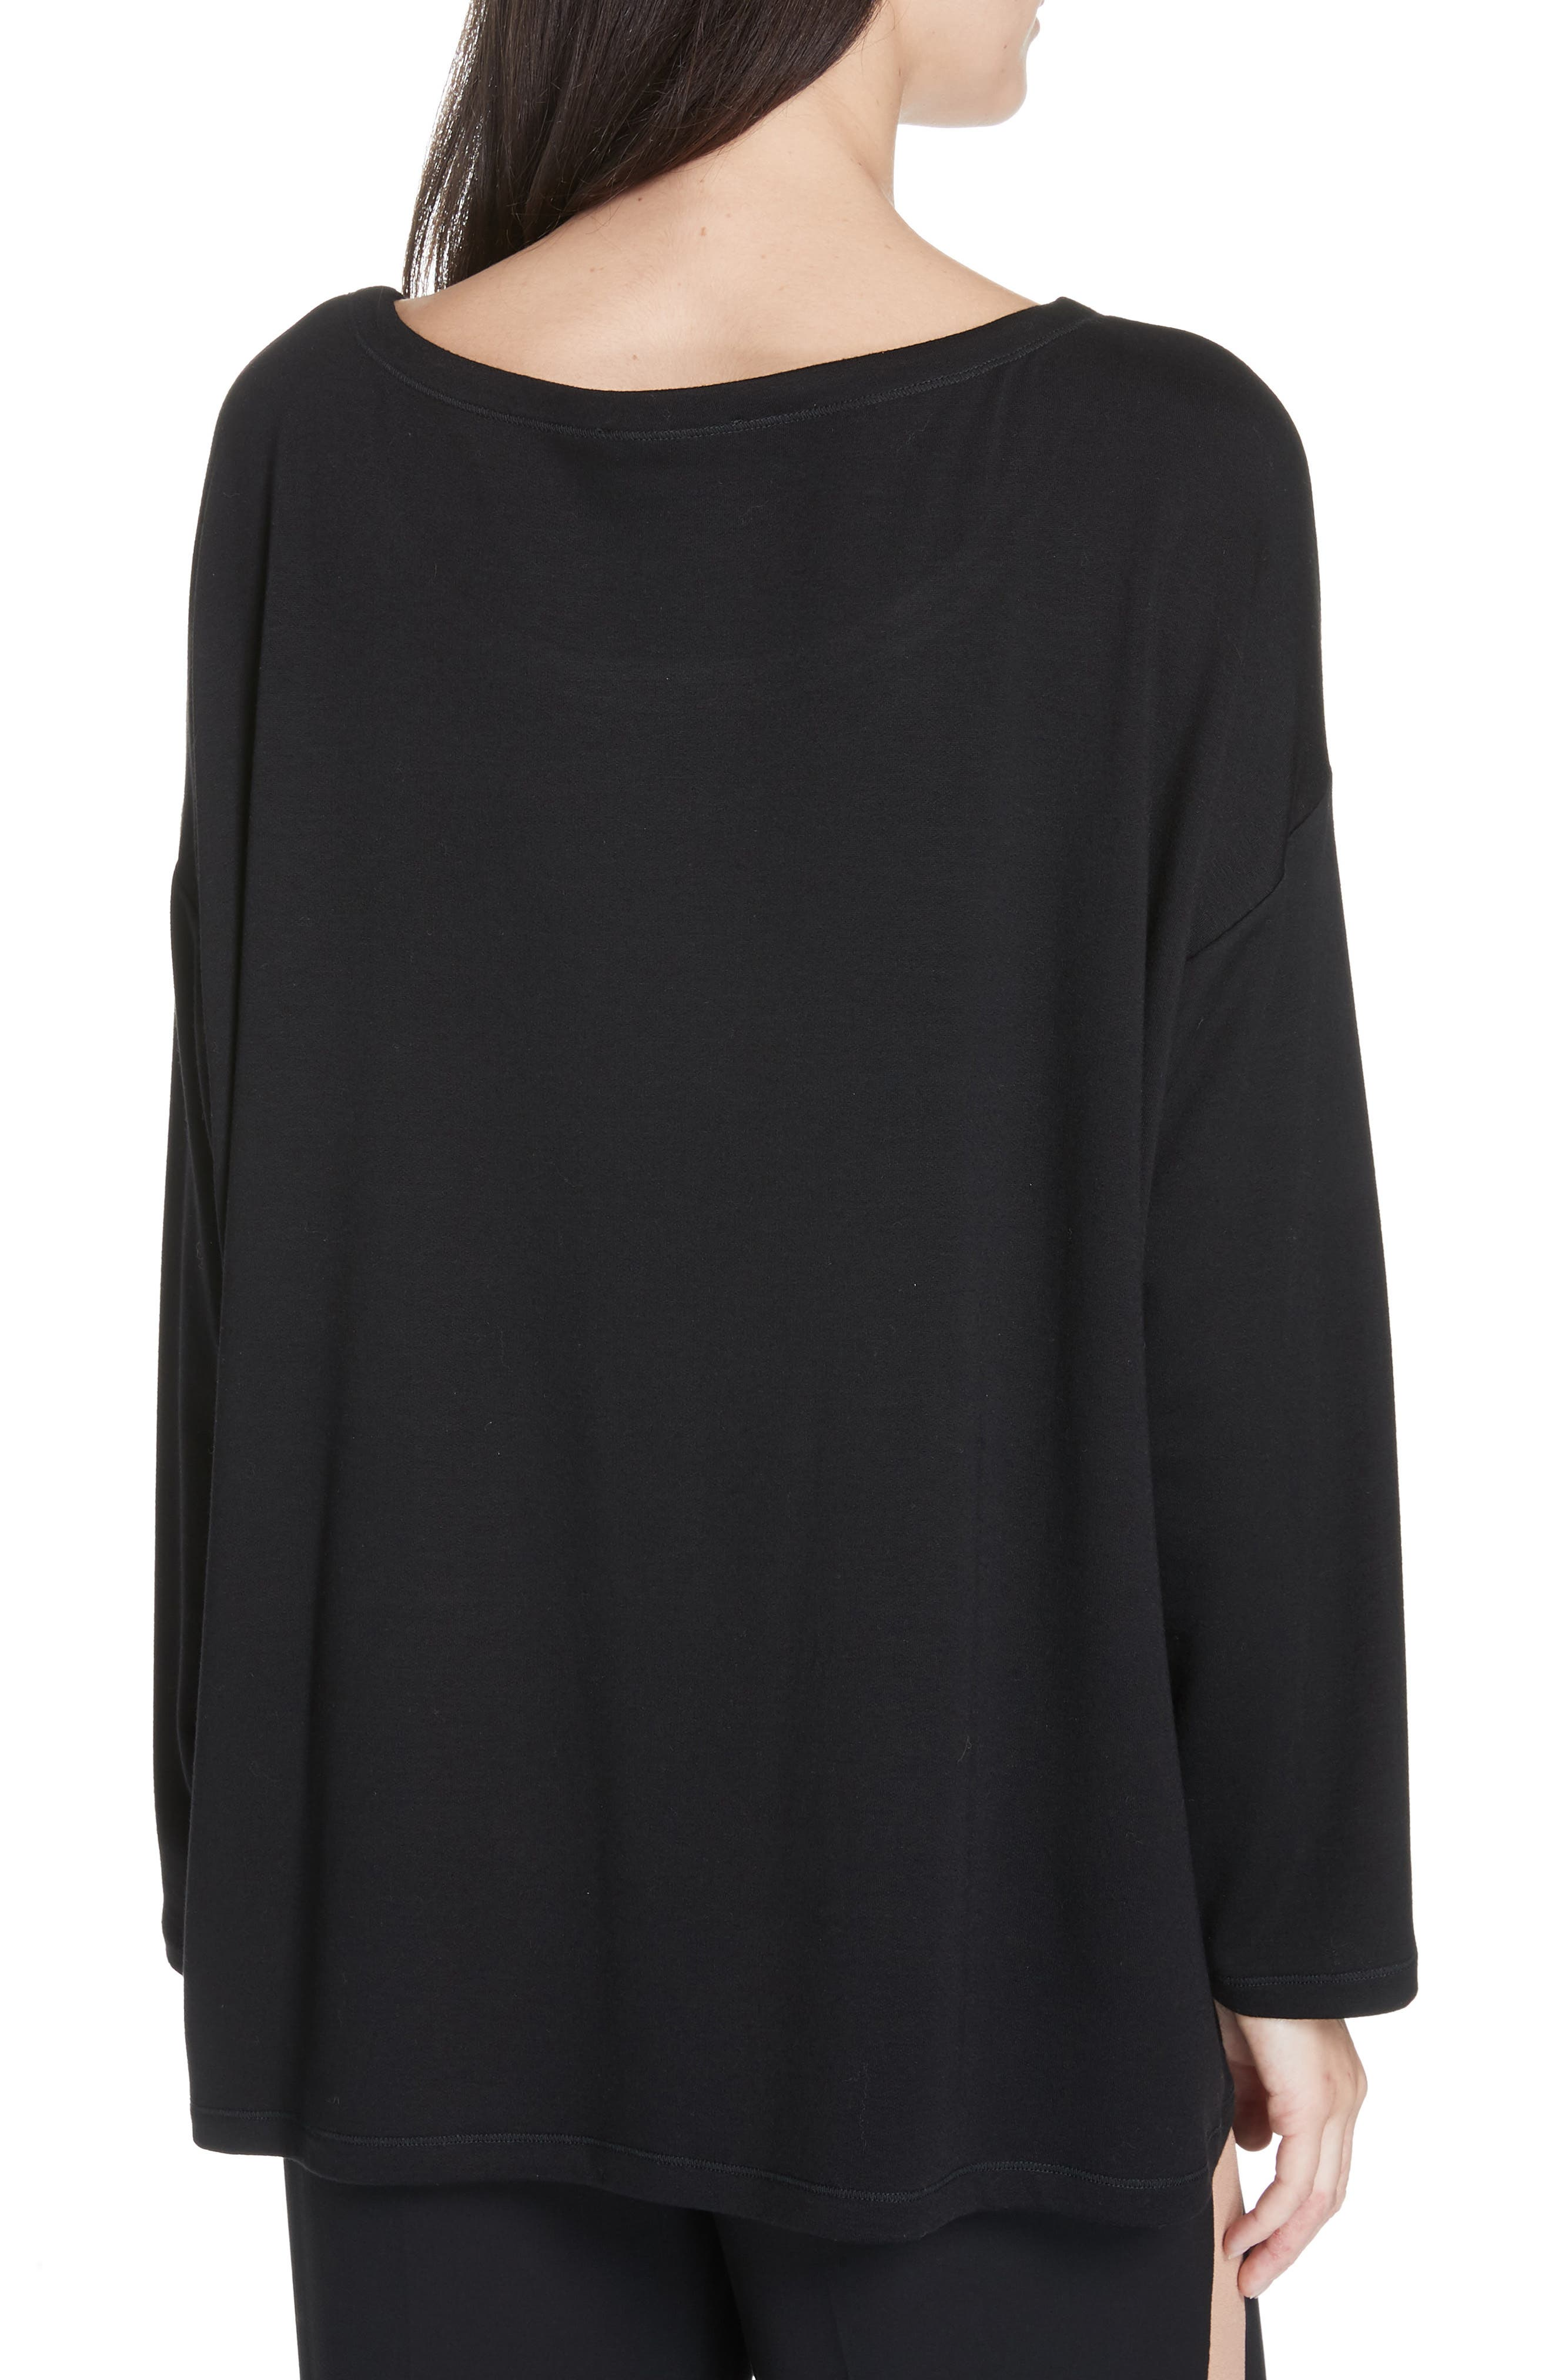 EILEEN FISHER, Stretch Terry Top, Alternate thumbnail 2, color, BLACK